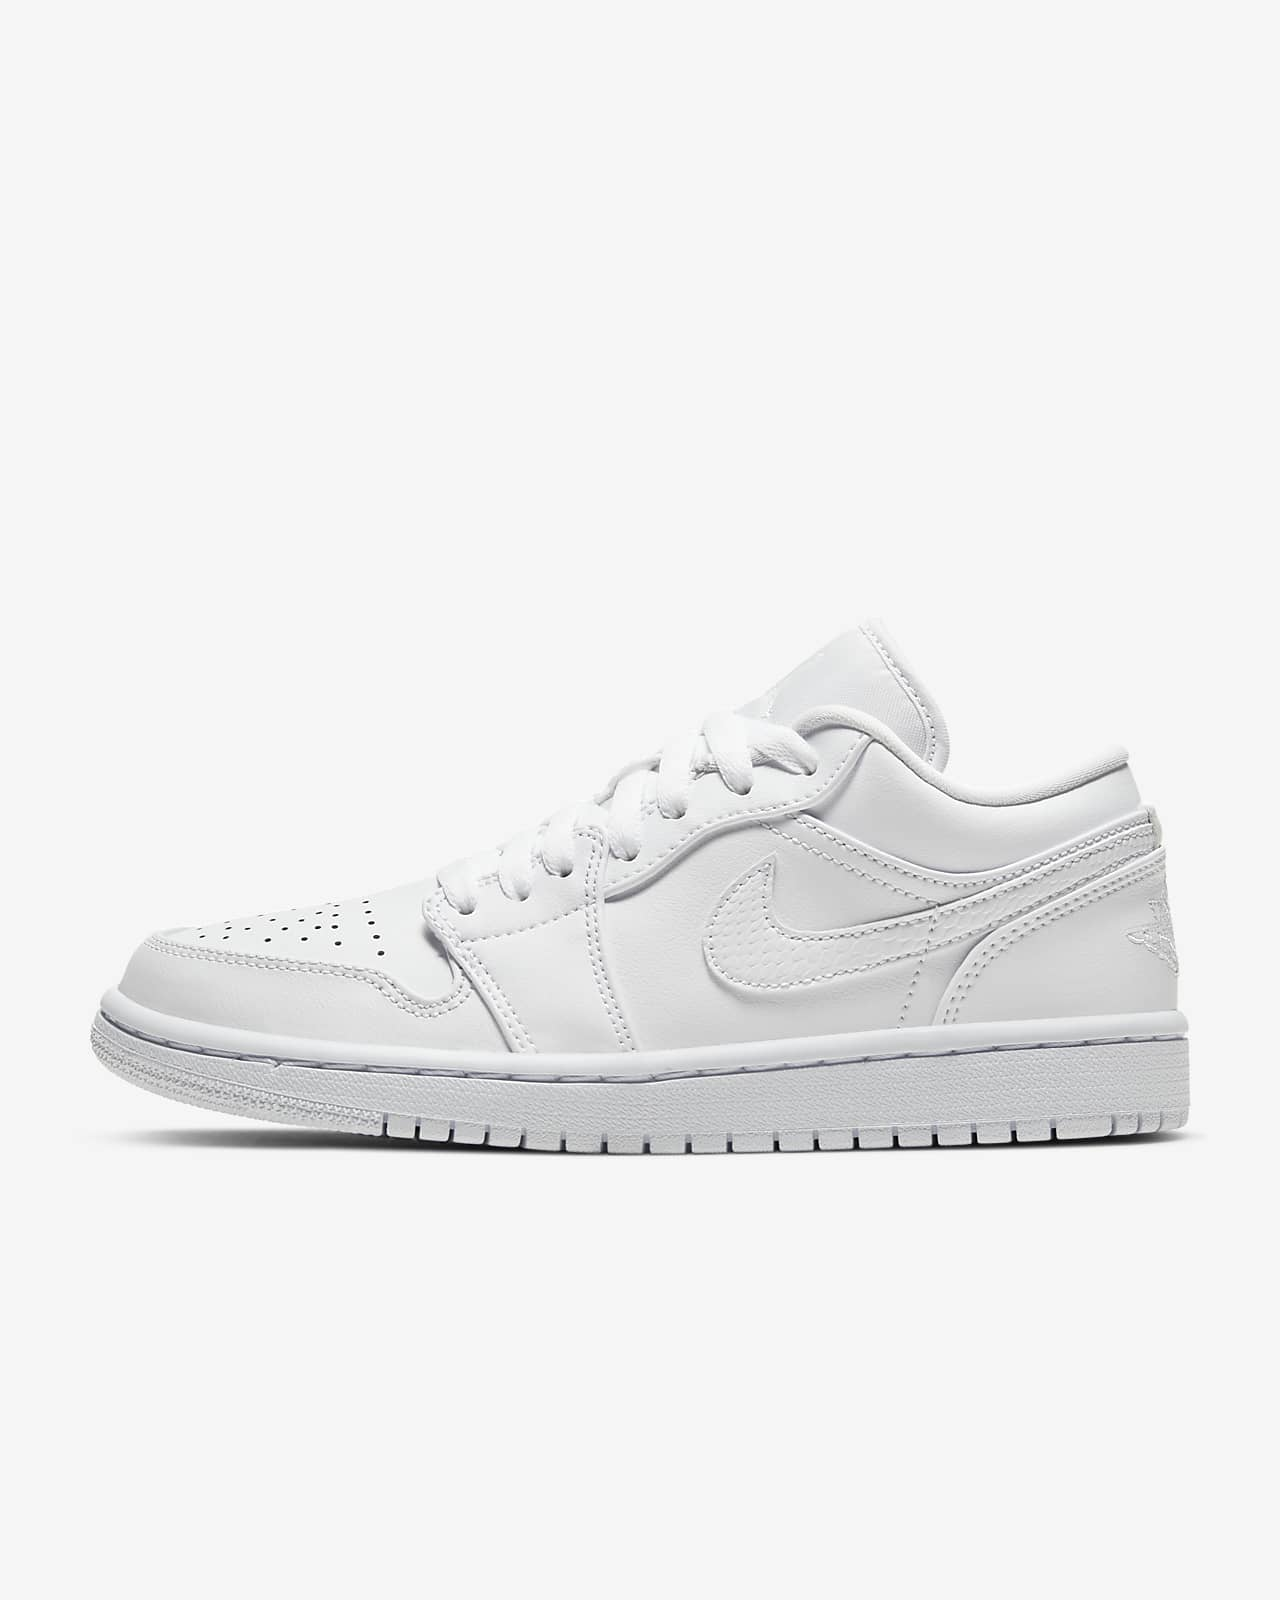 Air Jordan 1 Low Women S Shoe Nike Id